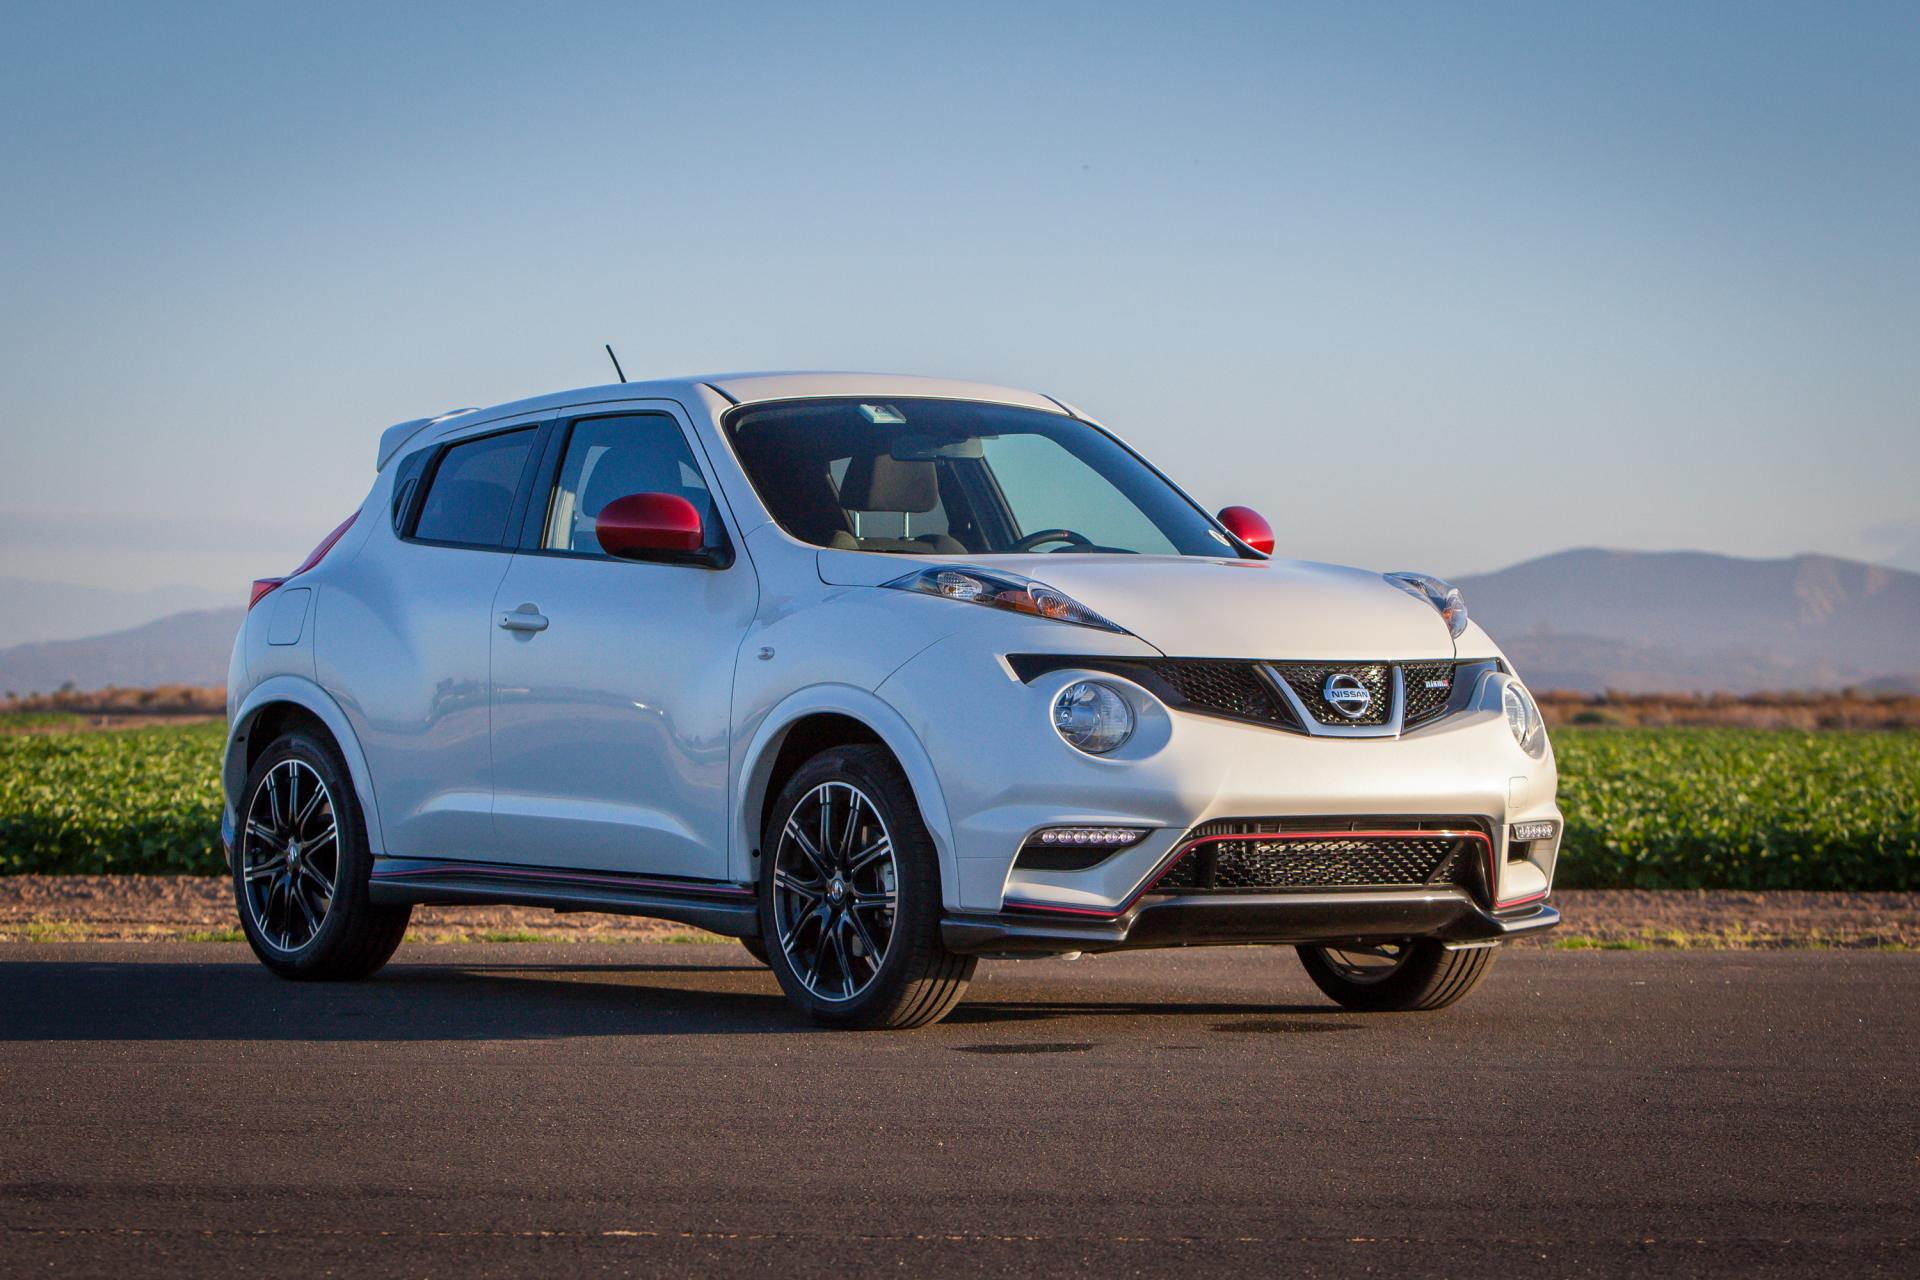 2014 Nissan Juke NISMO News and Information